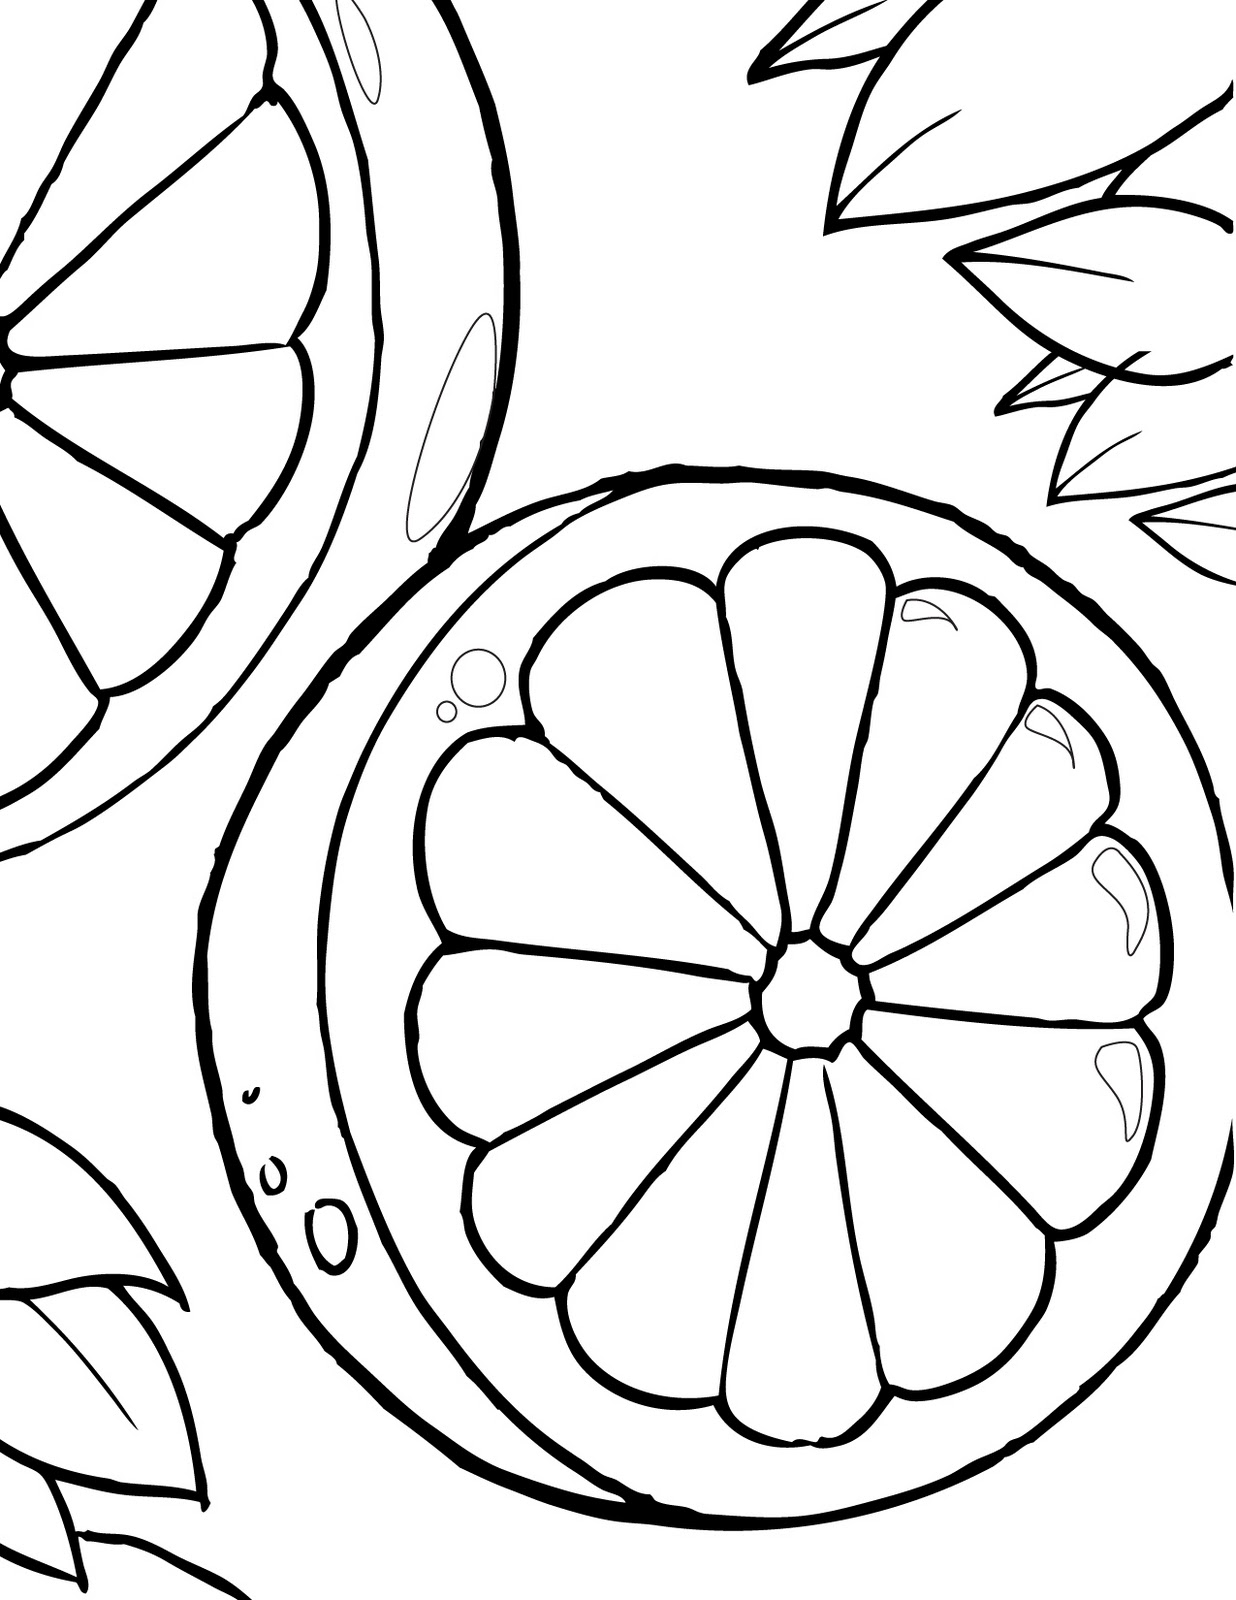 colorings pages the hero of color city coloring book pages colorings